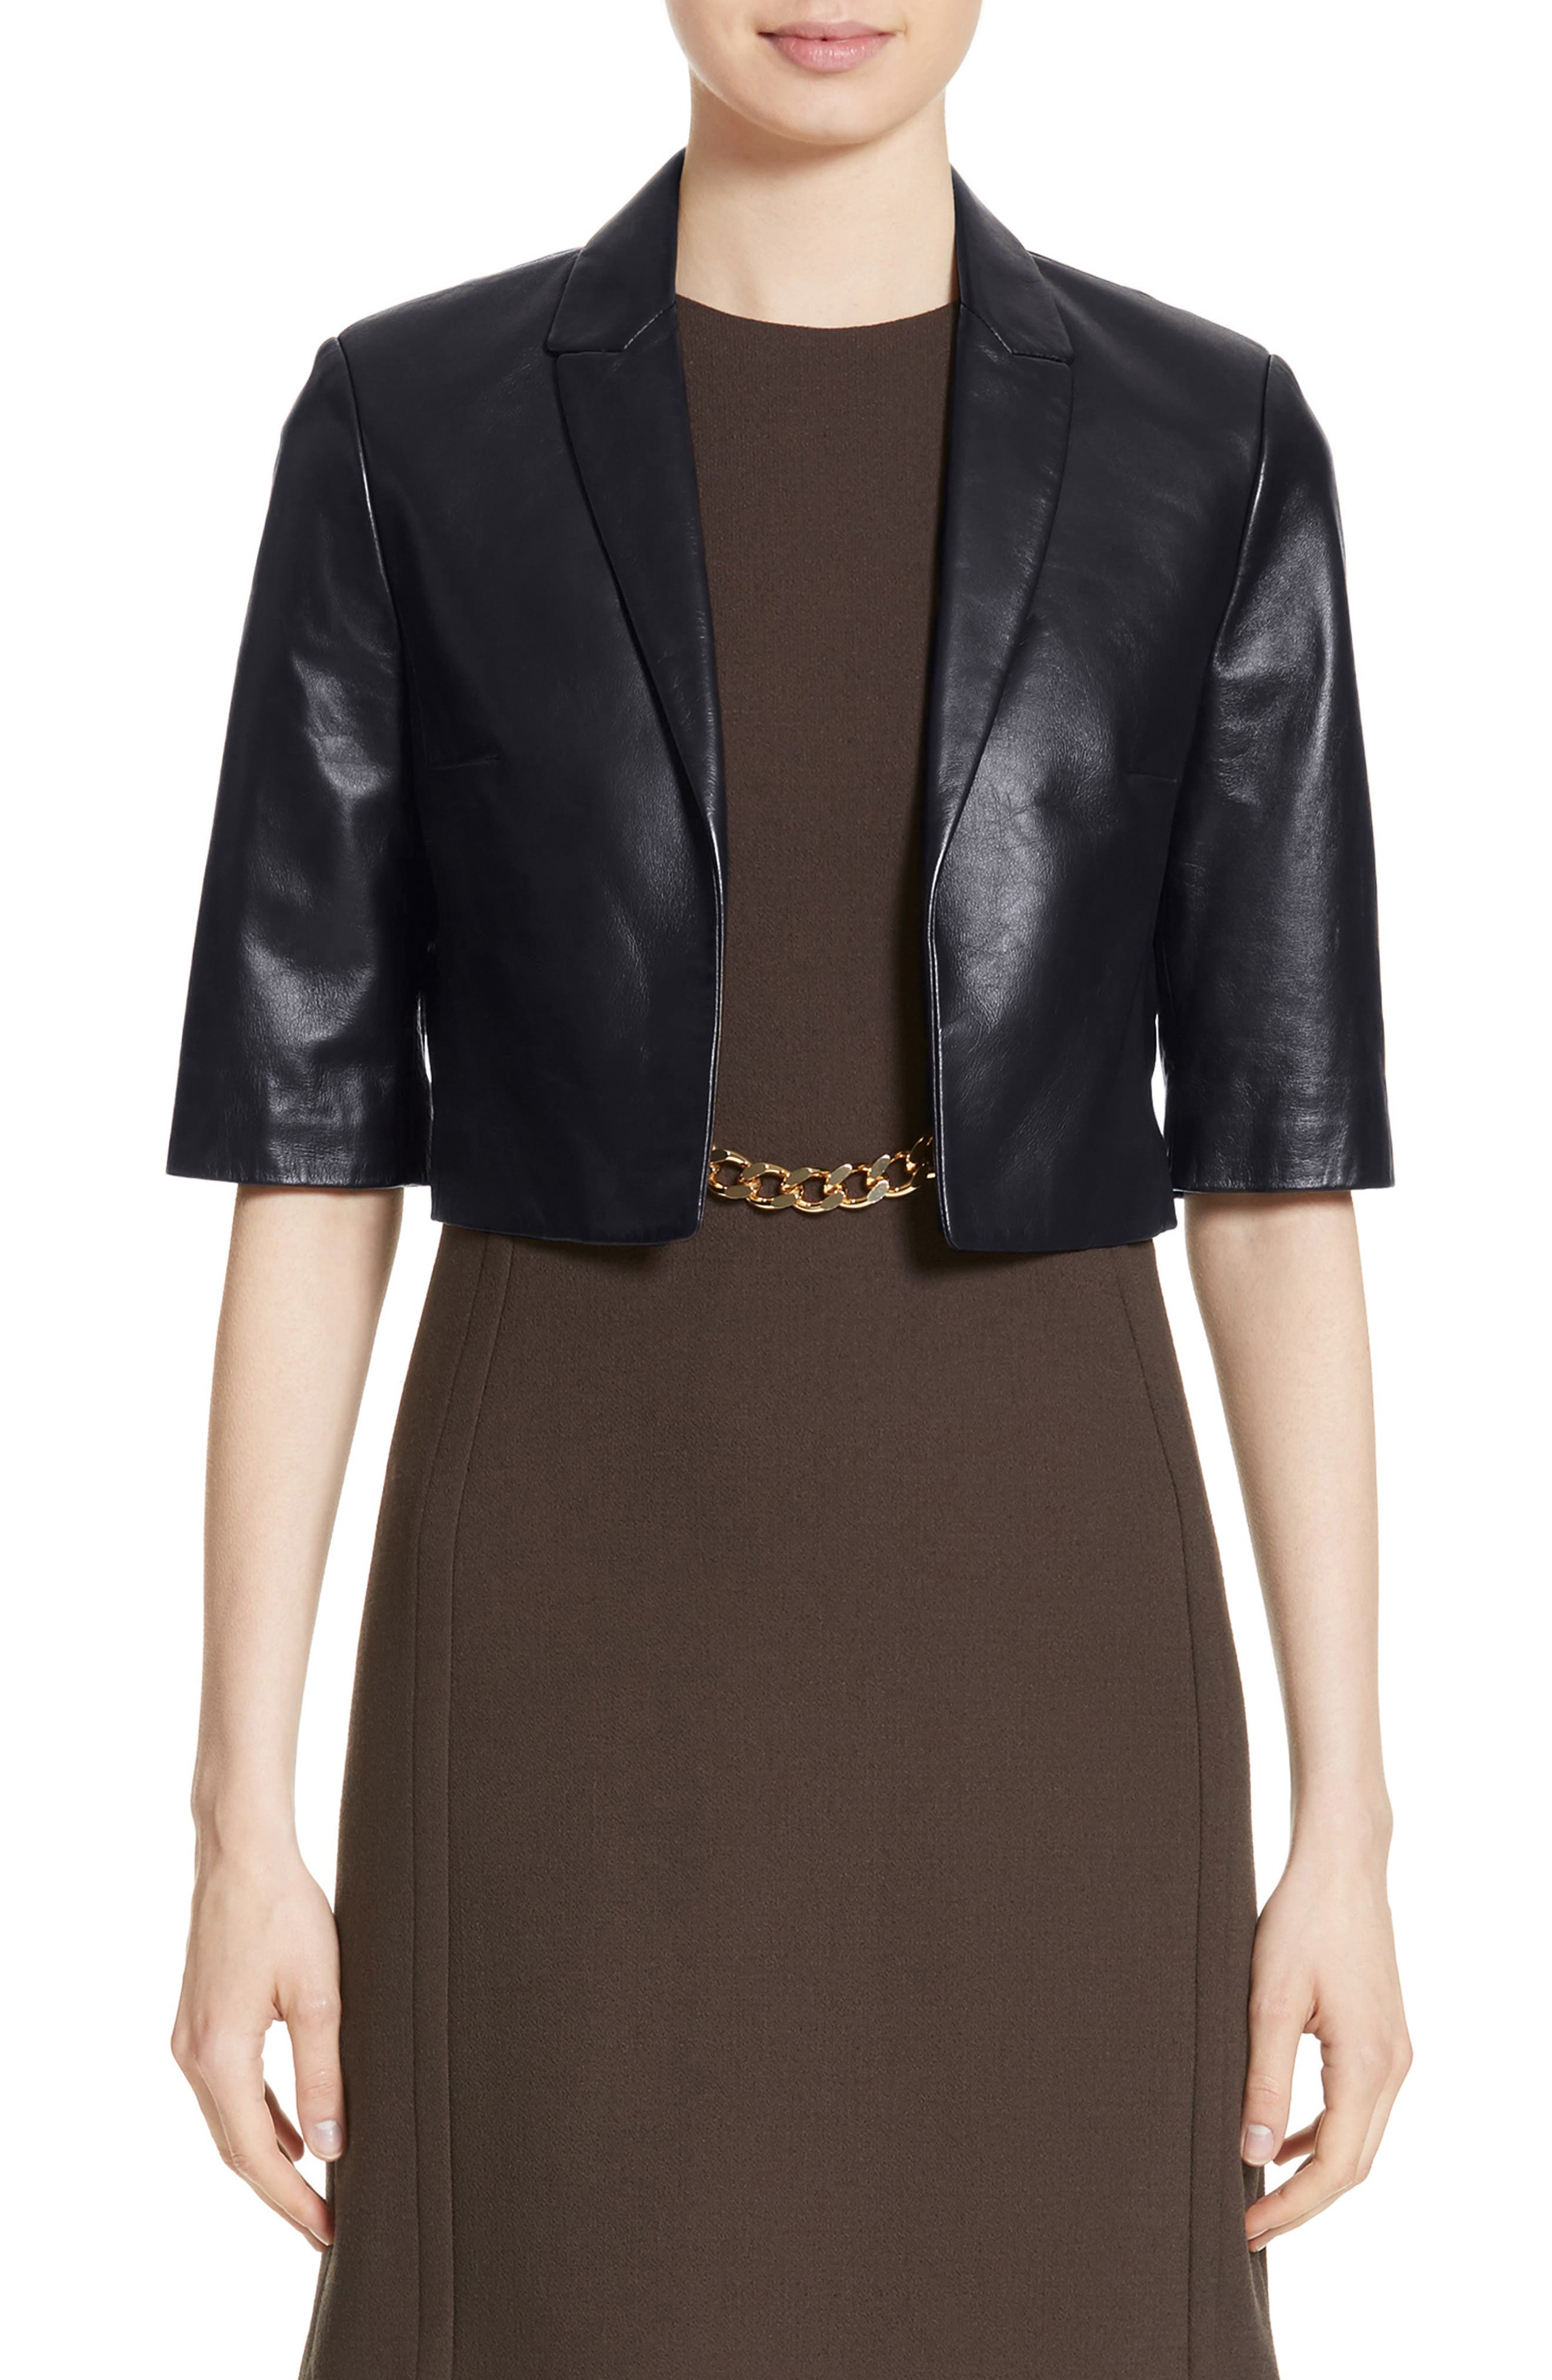 Michael Kors Crop Plongé Leather Jacket